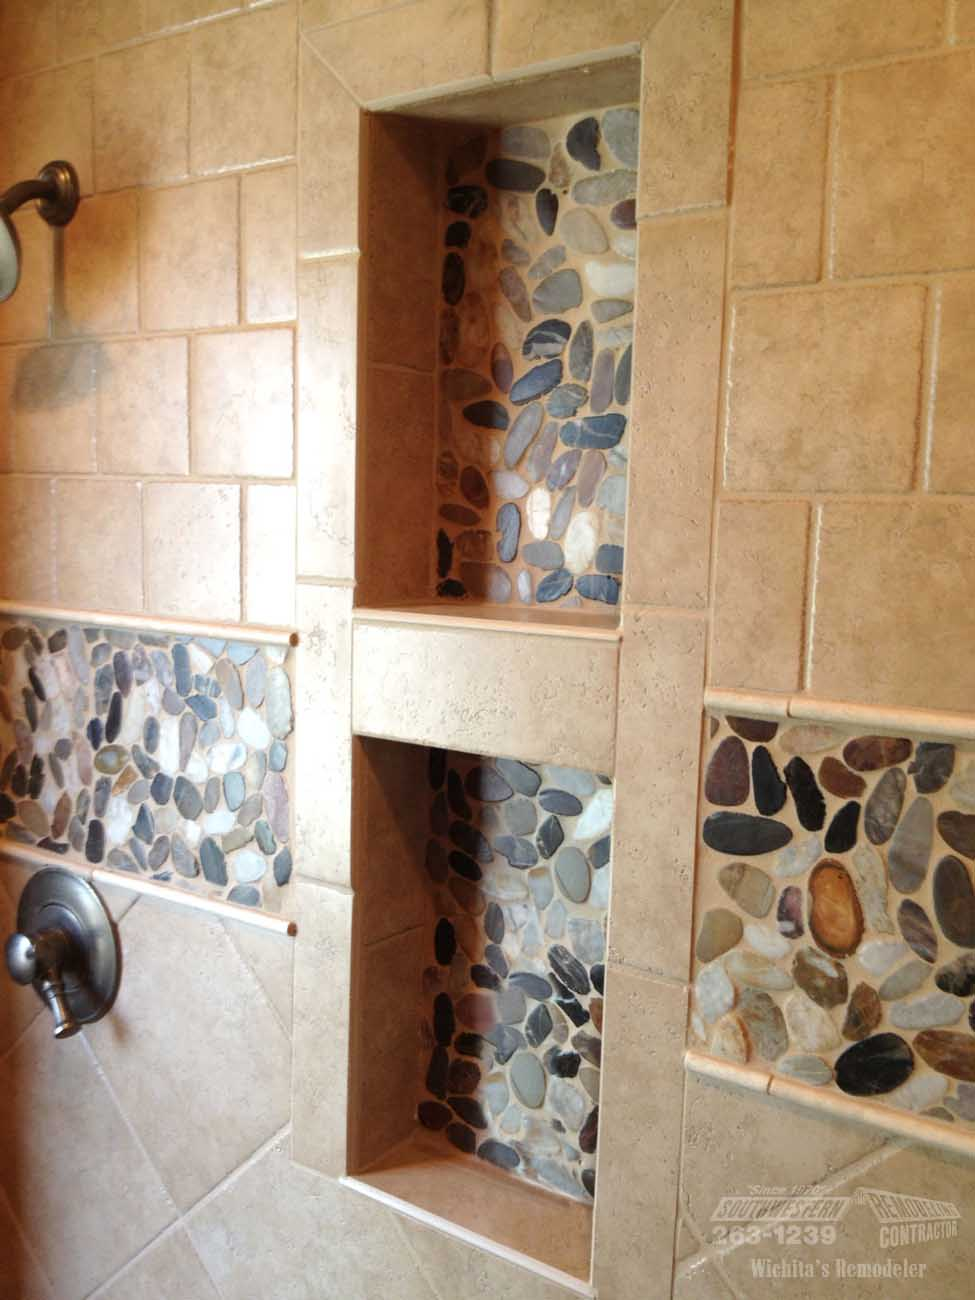 Bathroom Remodeling Wichita Ks Interesting Bathroom Remodeling  Southwestern Remodeling  Wichita Inspiration Design